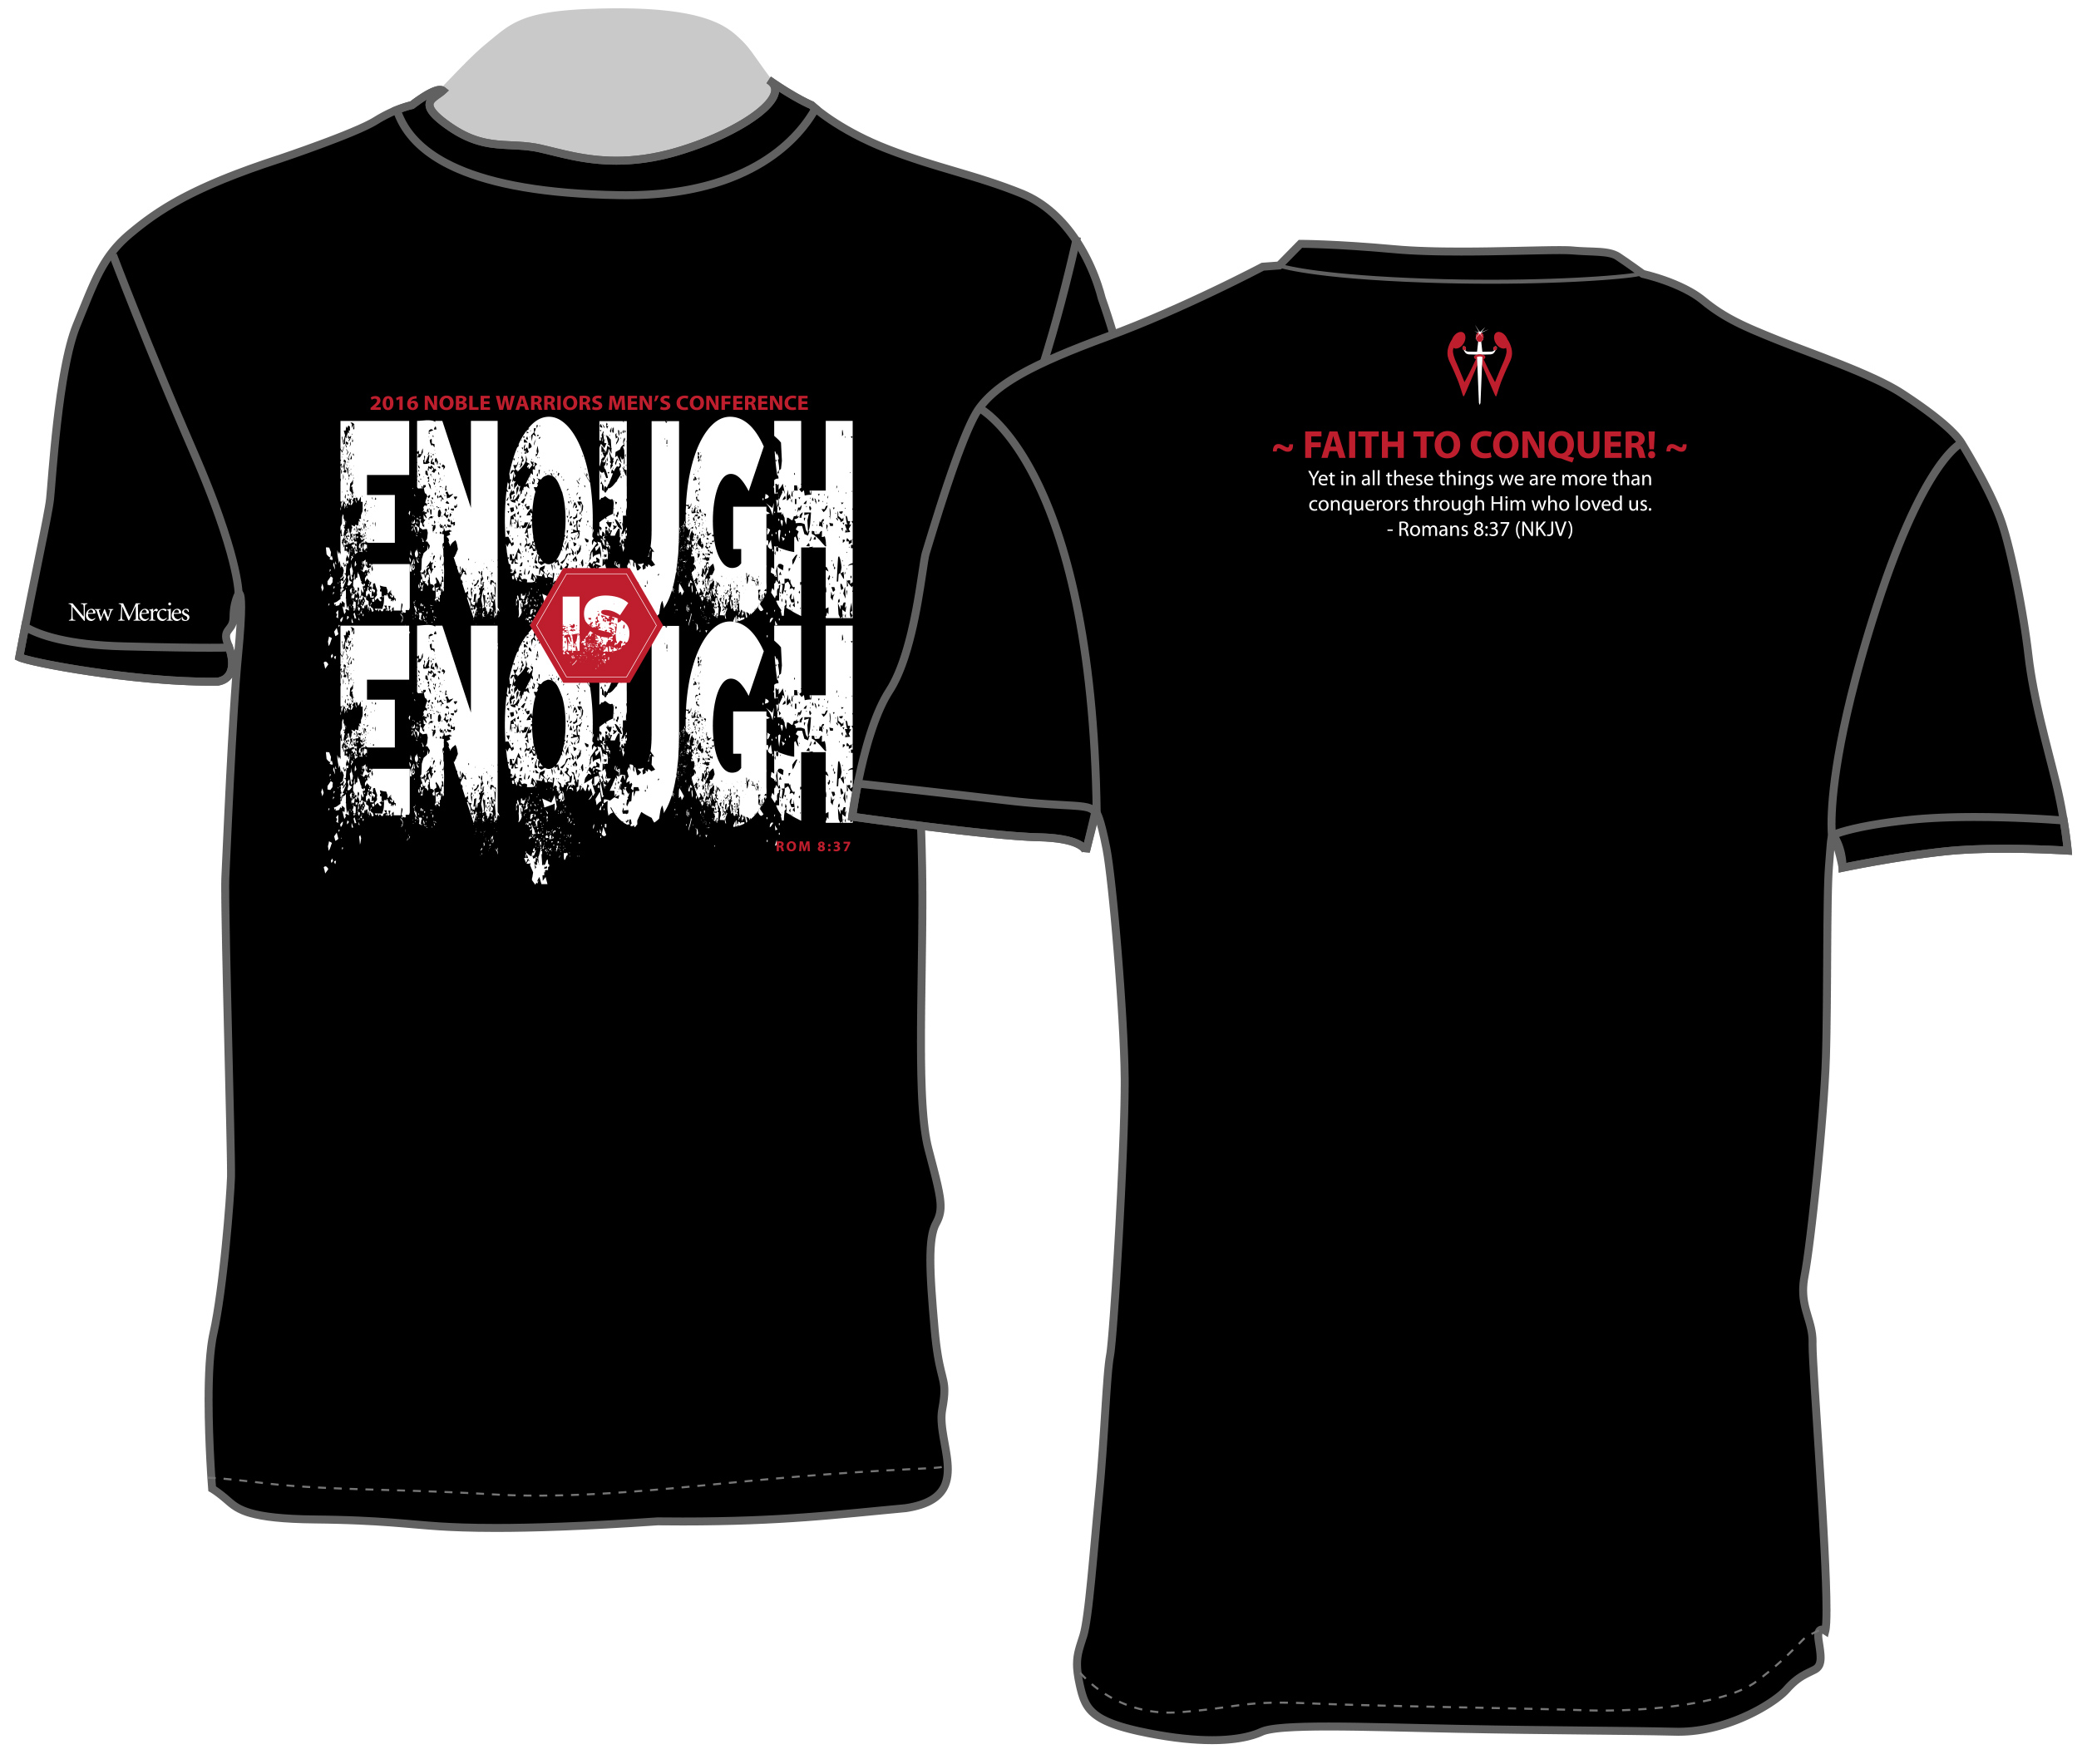 NW Conference Shirt